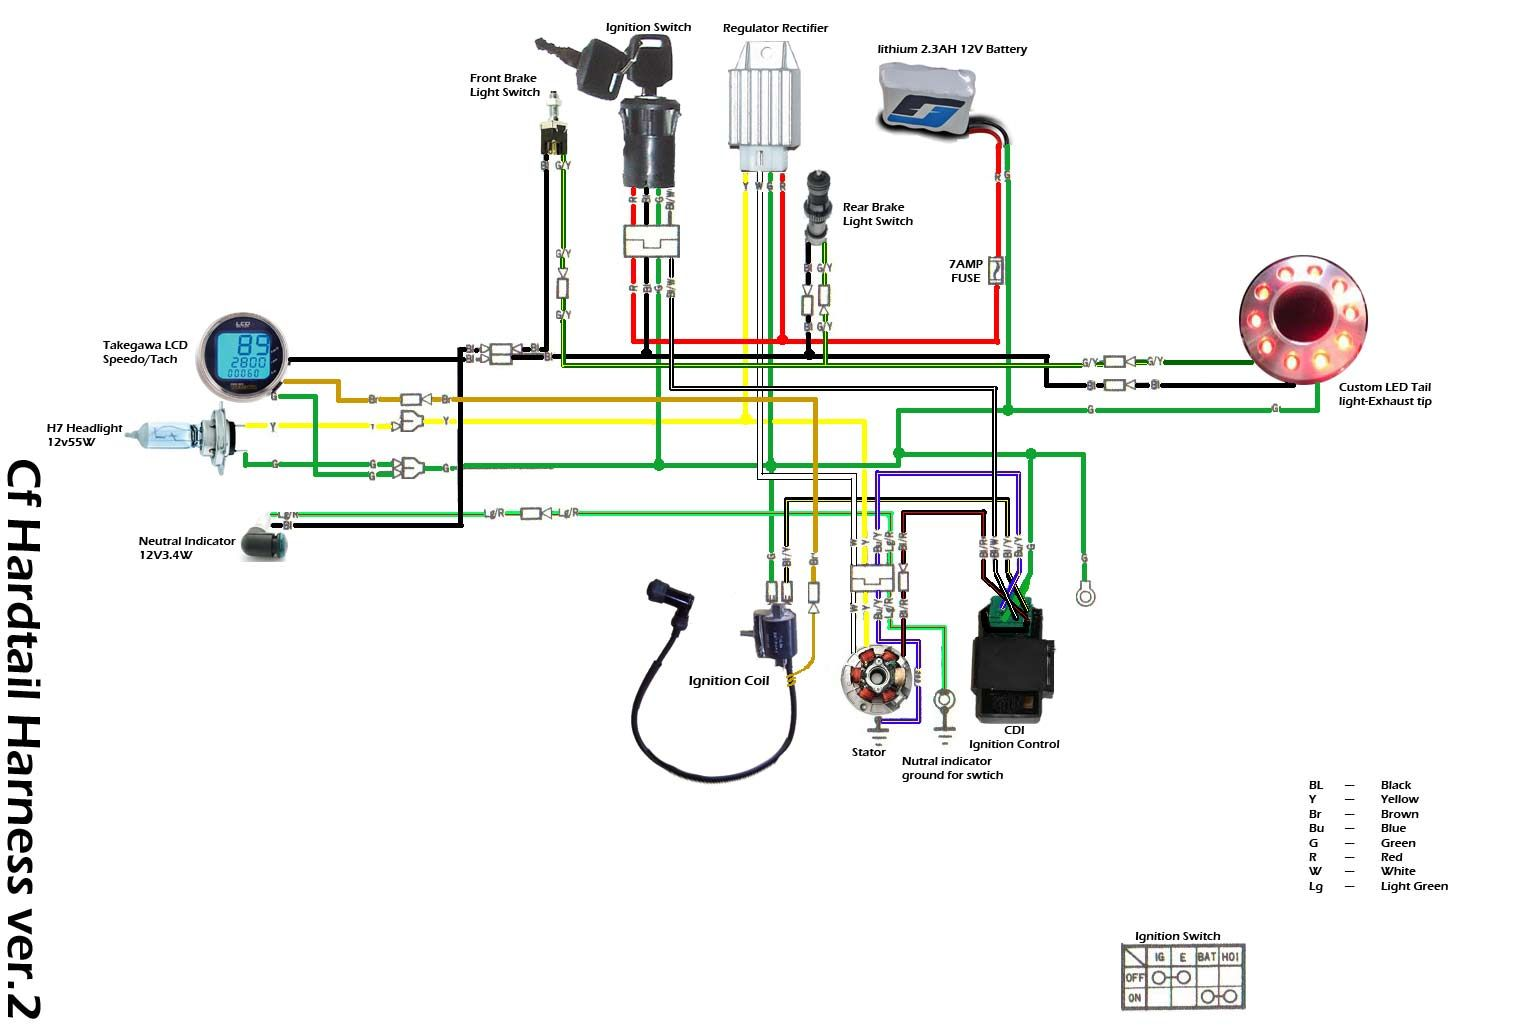 Lifan 49cc Wiring Diagram - Wiring Diagrams on